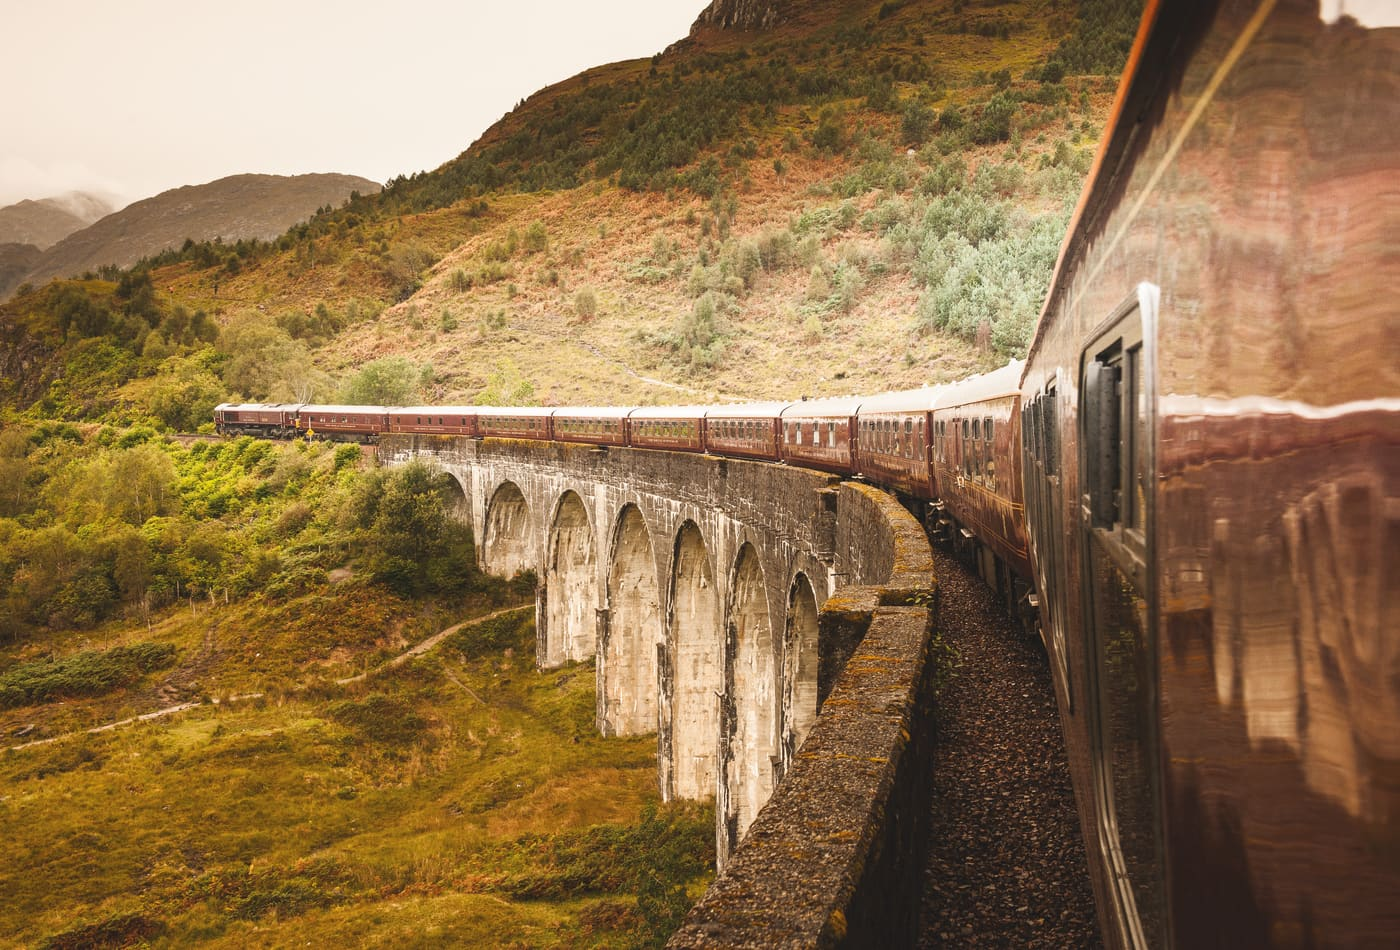 Returning soon: A luxury train with whisky tastings and castle tours